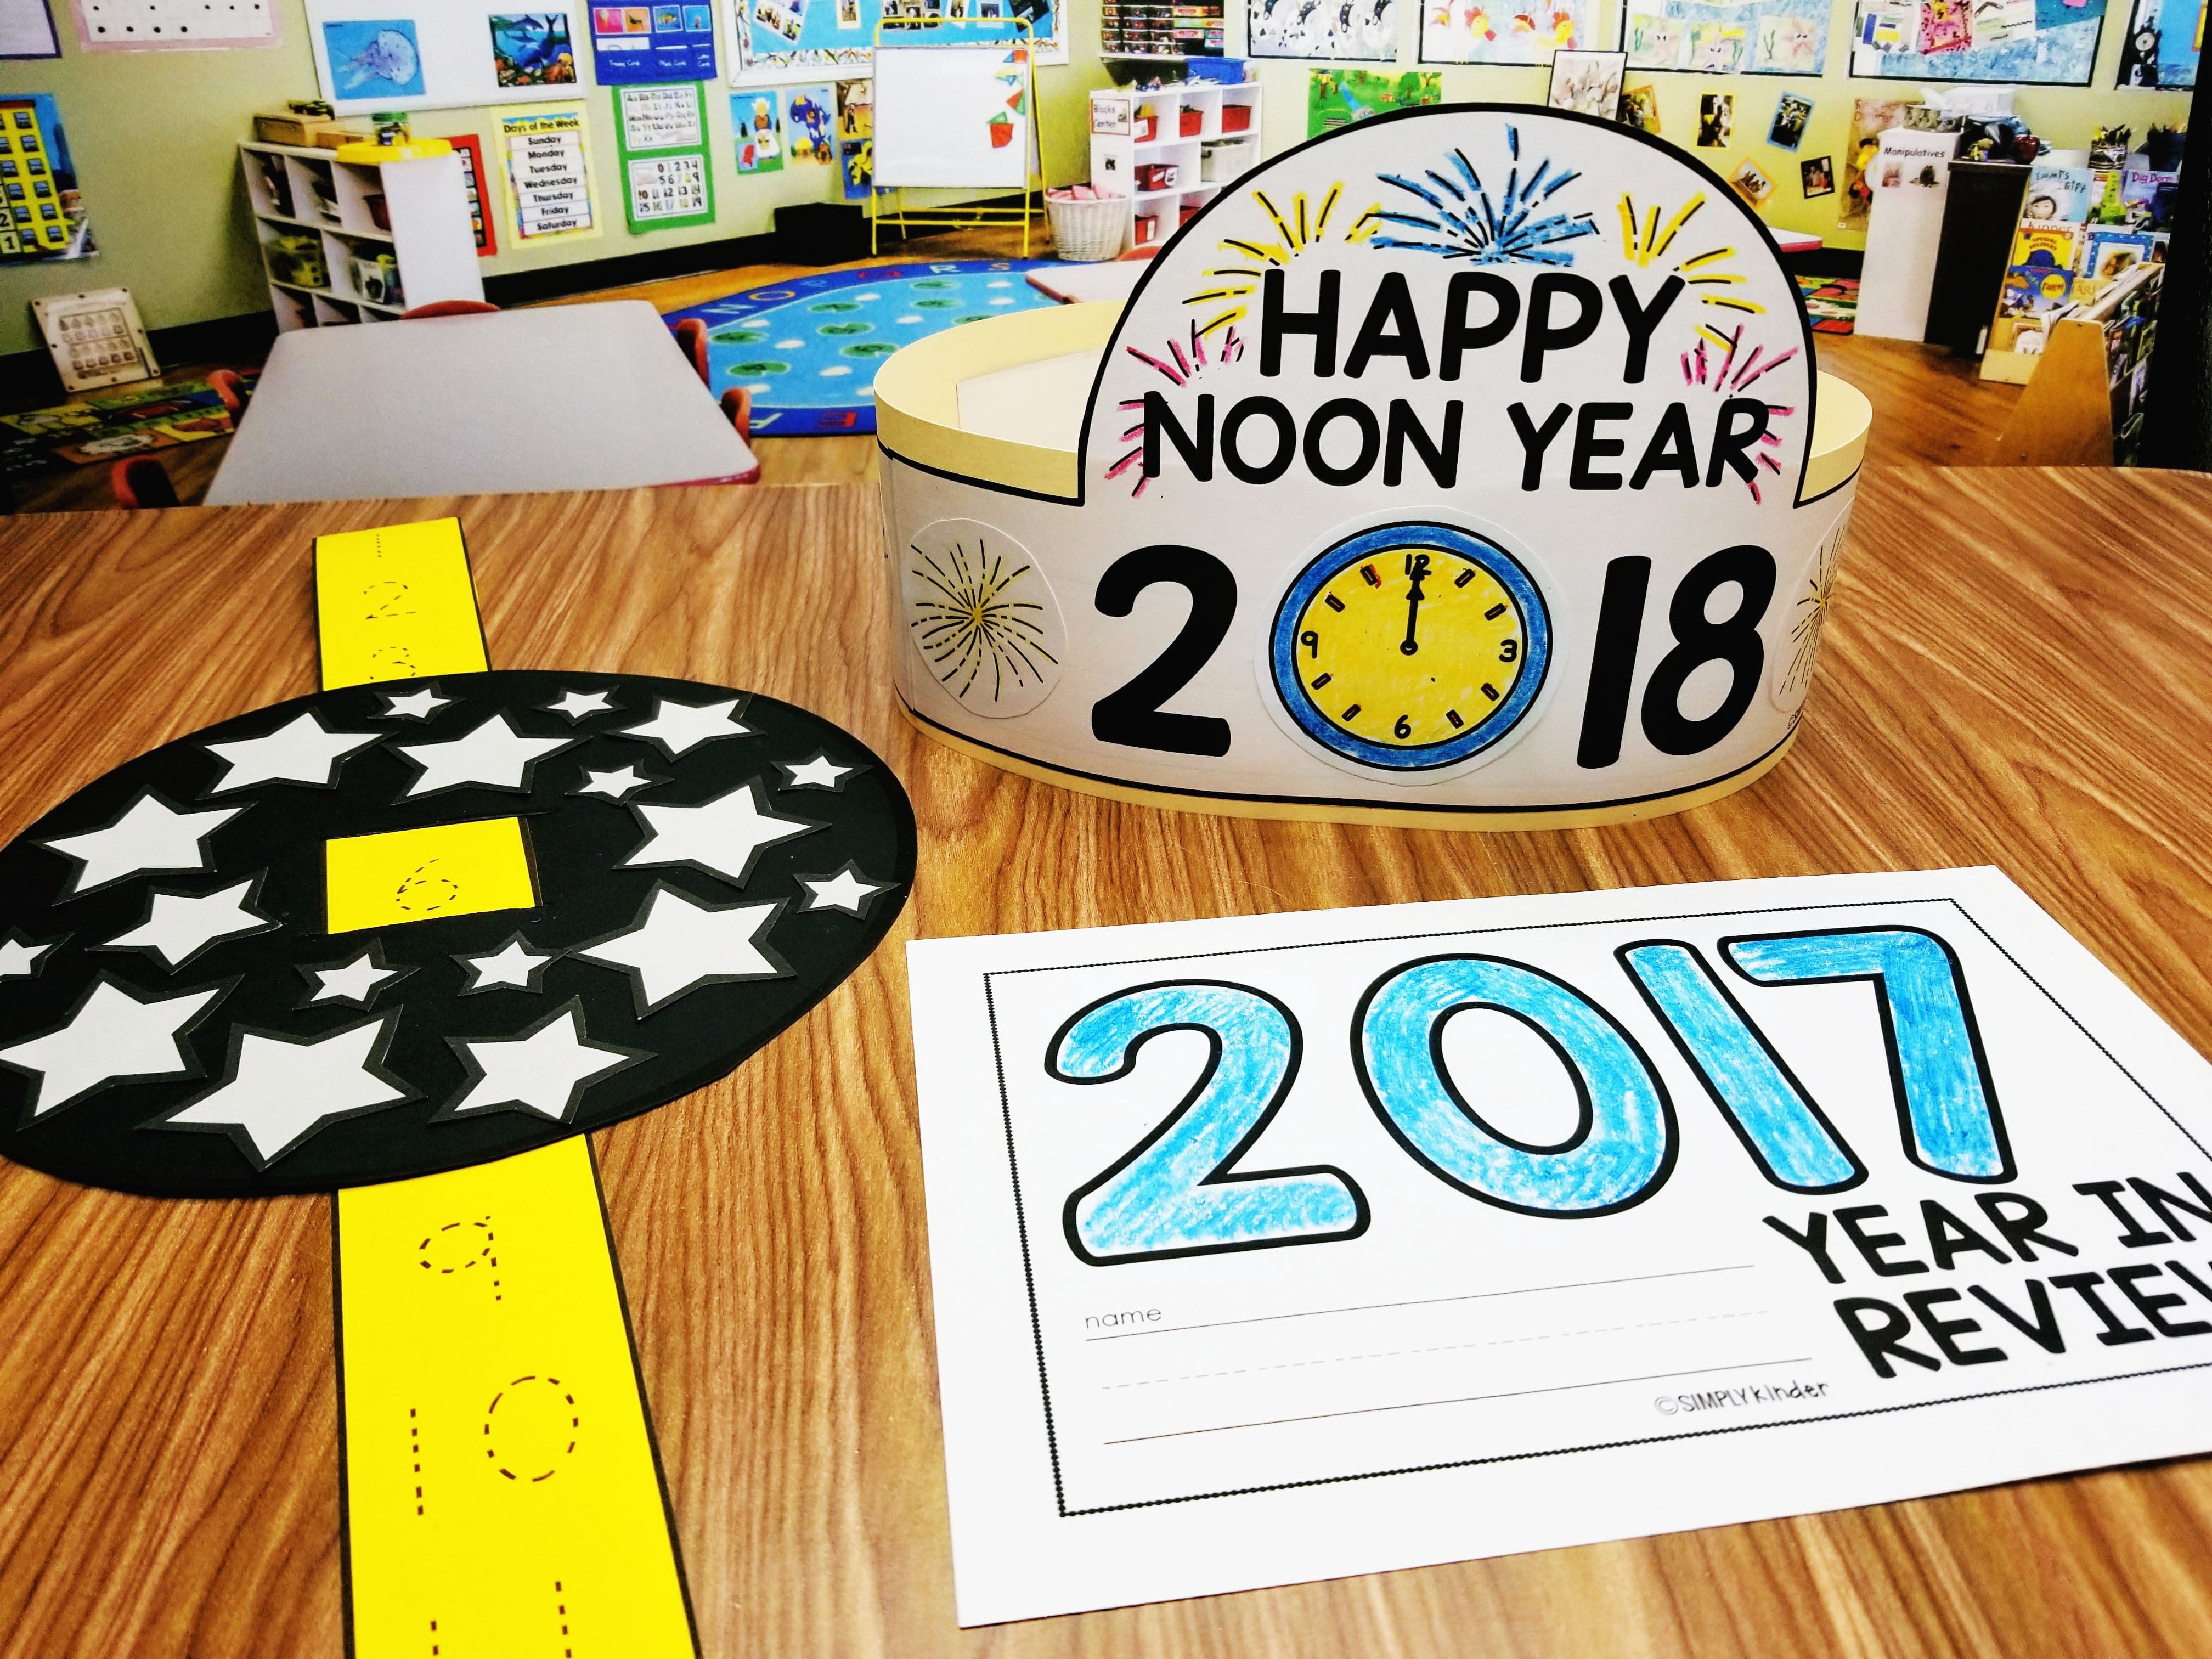 Celebrate New Years with your students by having a Noon Years Celebration! Students will love this New Year Hat, Countdown Ball, and themed academic activities! They will also set goals and reflect!